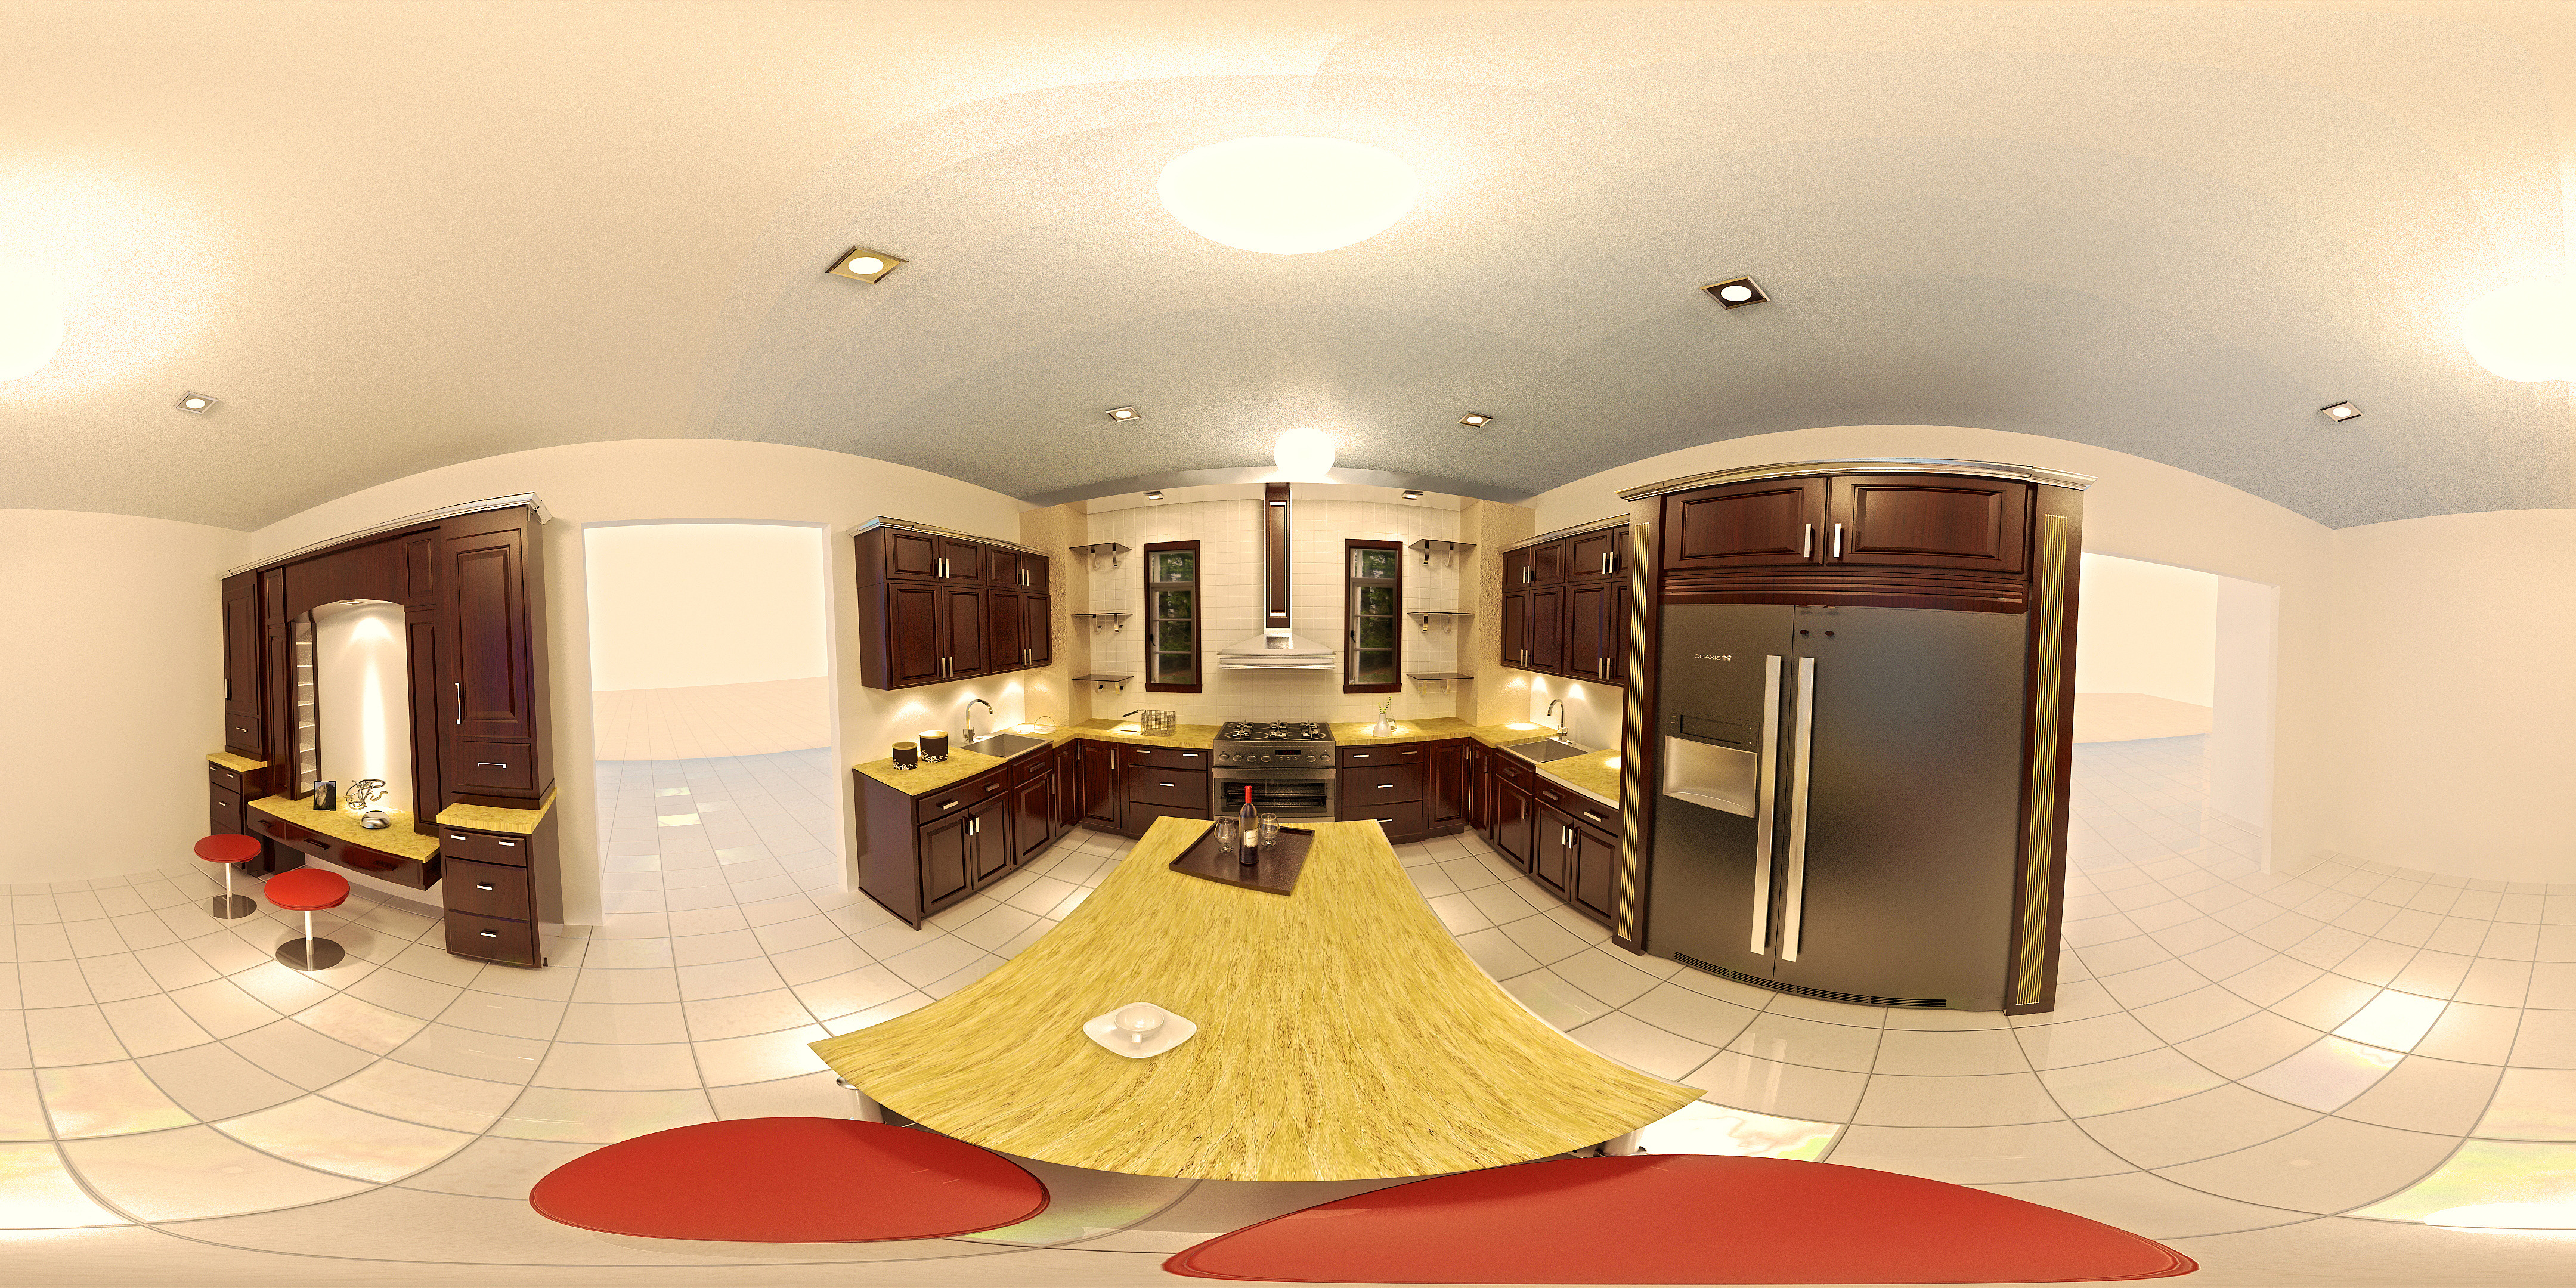 Kitchen By Overclockers 3docean